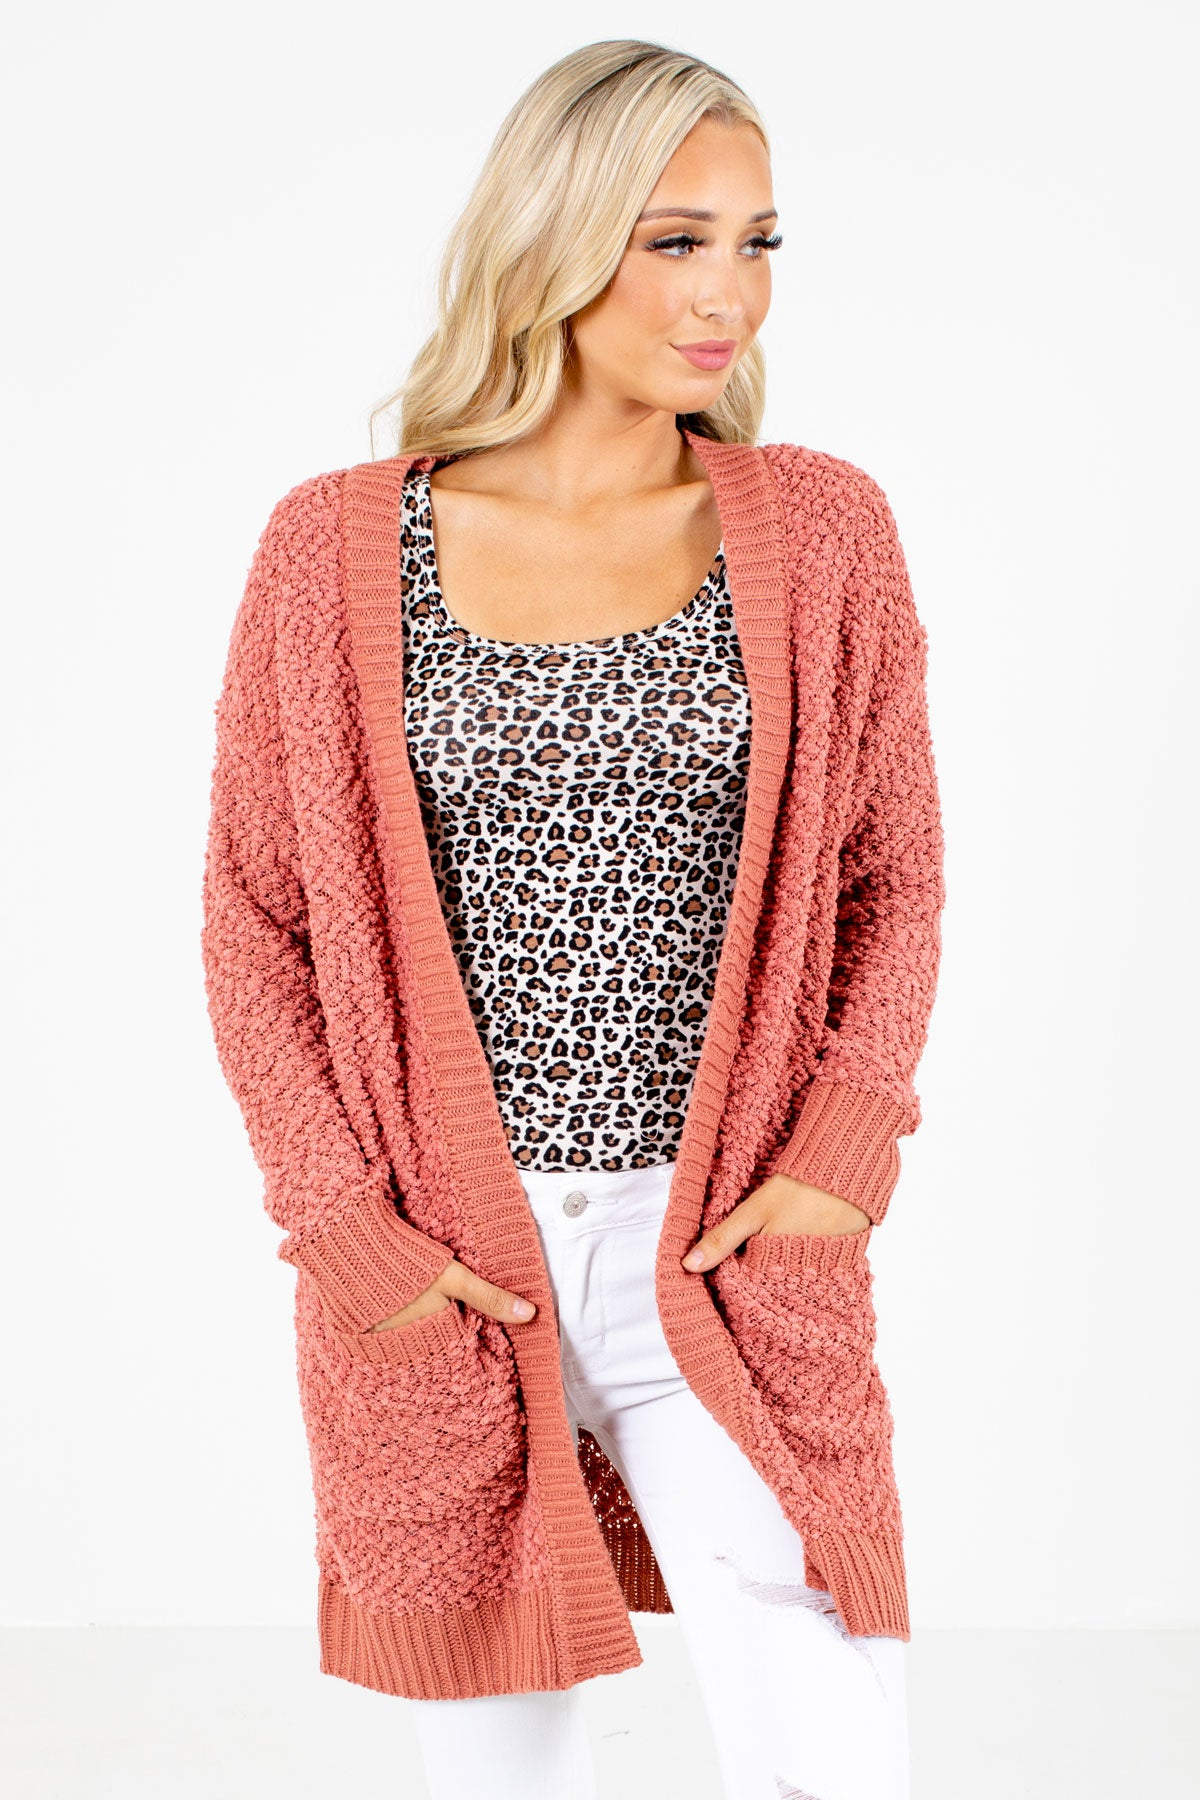 Pink Popcorn Knit Material Boutique Cardigans for Women